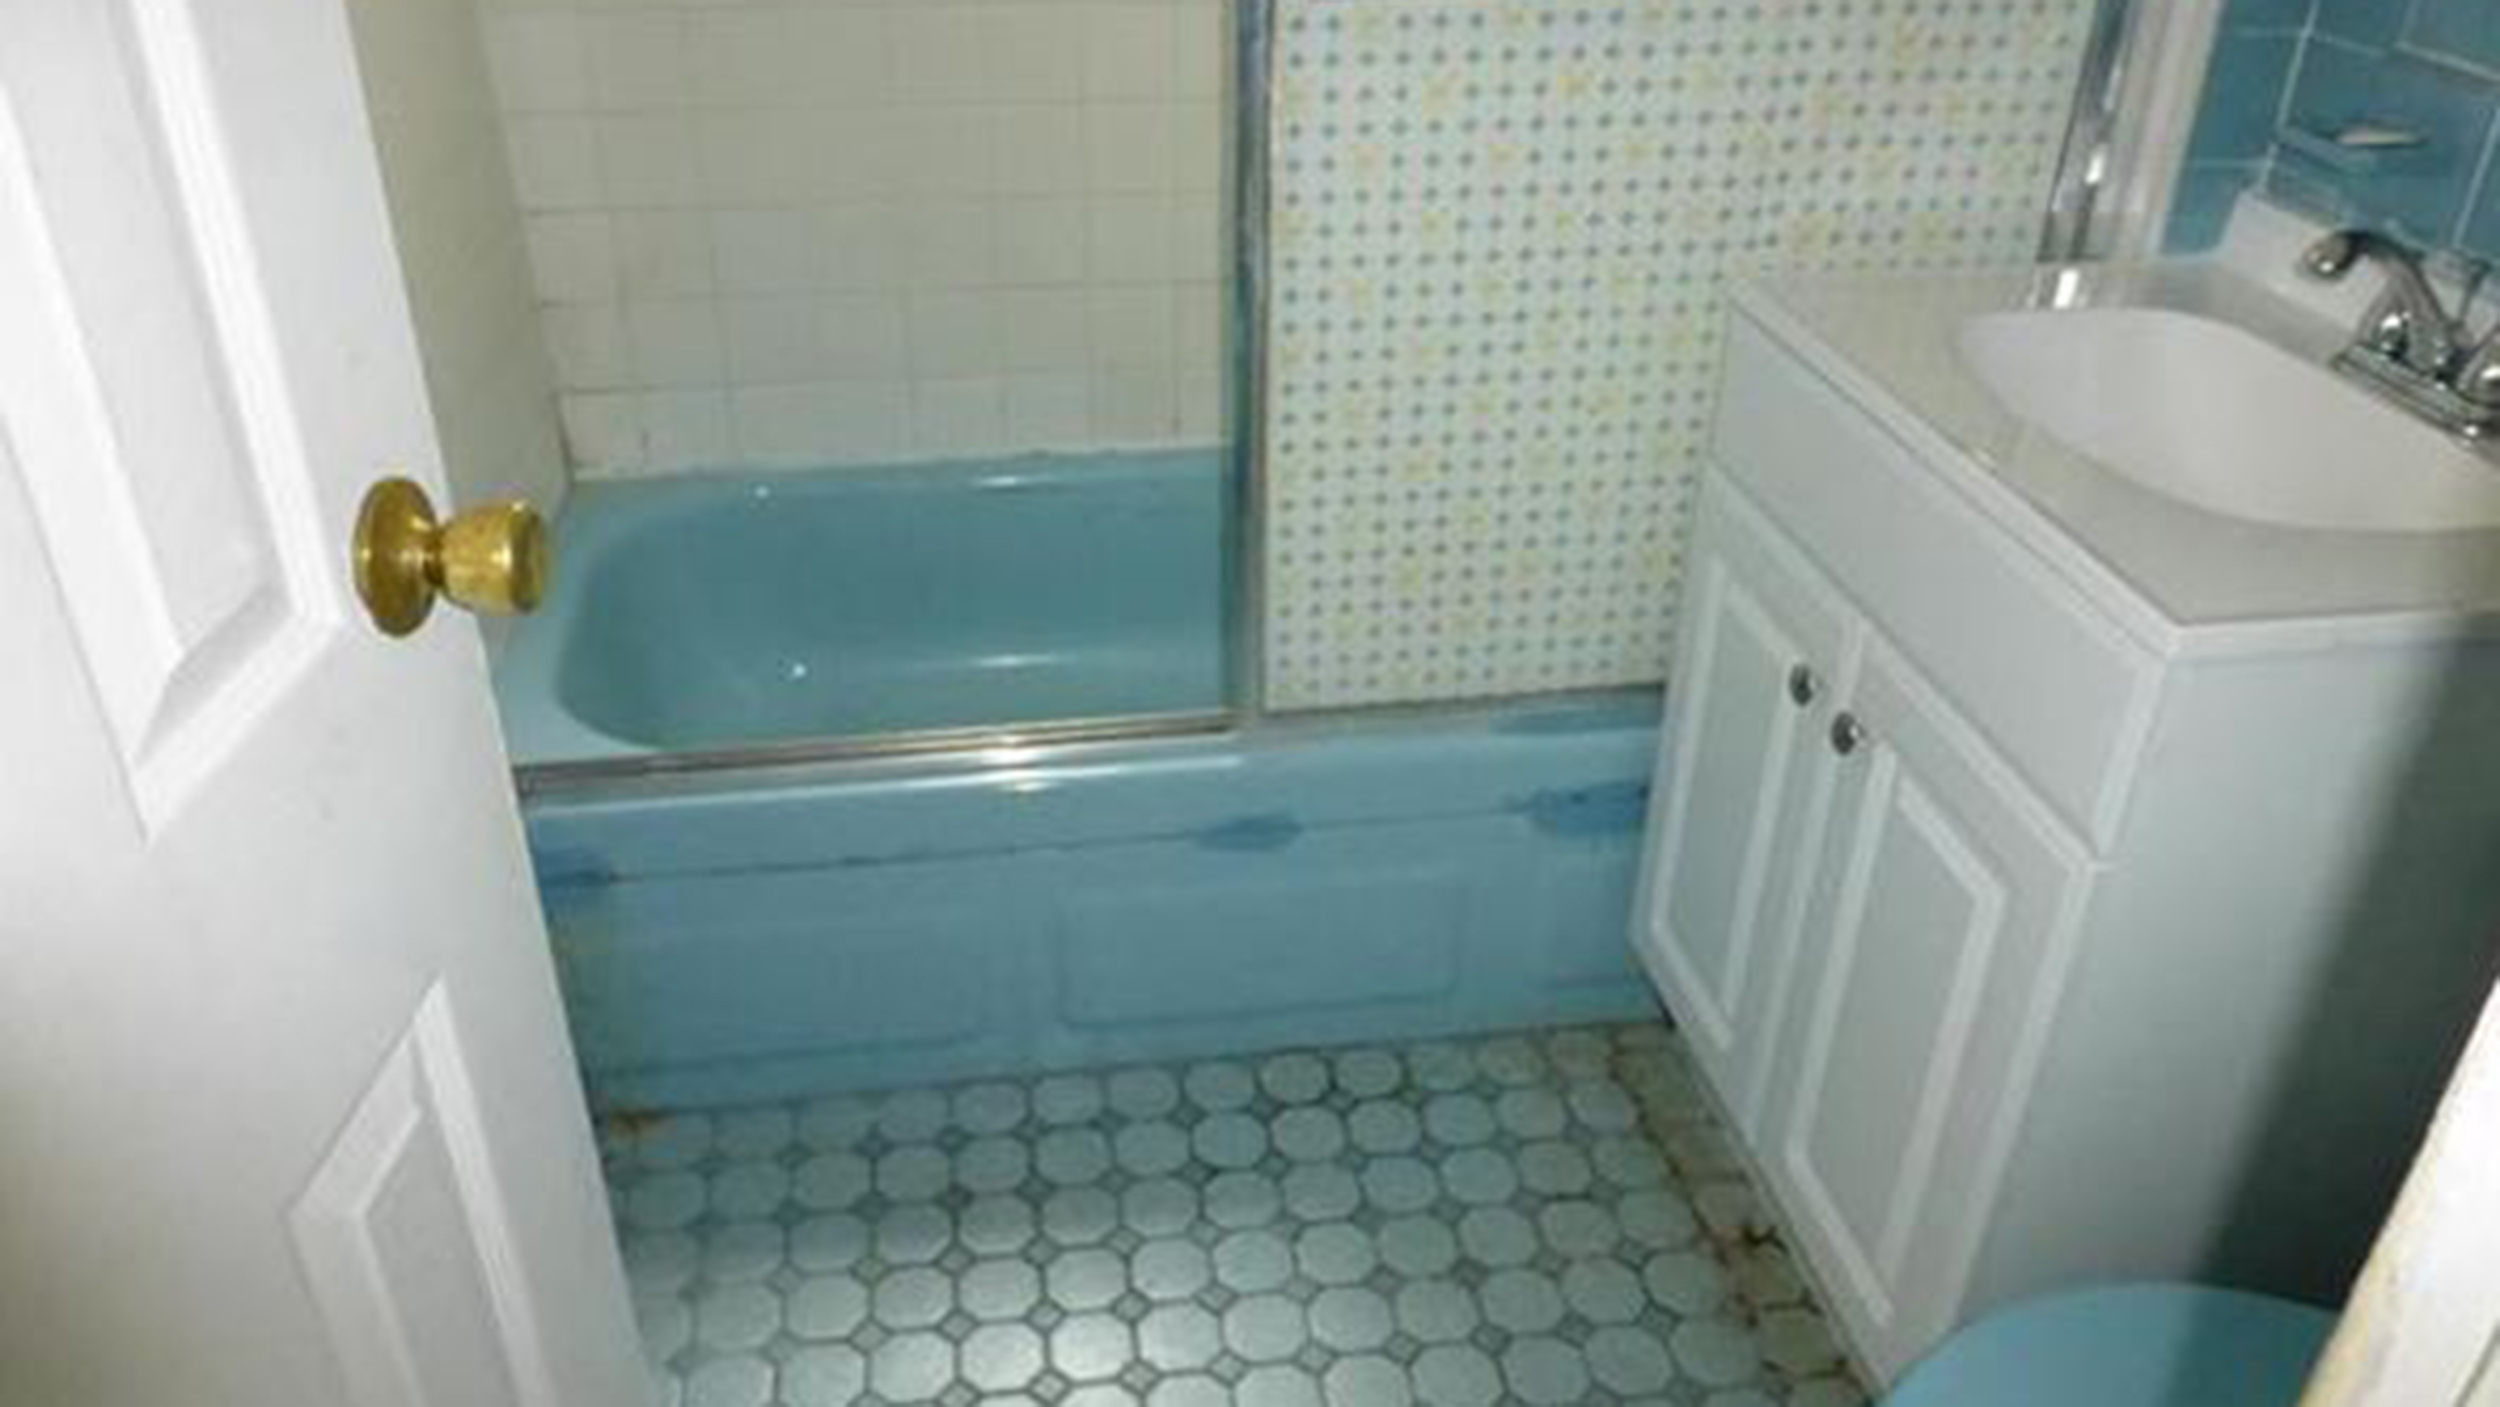 See this 105 year old home s bathroom go from blue to beautiful   TODAY com. See this 105 year old home s bathroom go from blue to beautiful